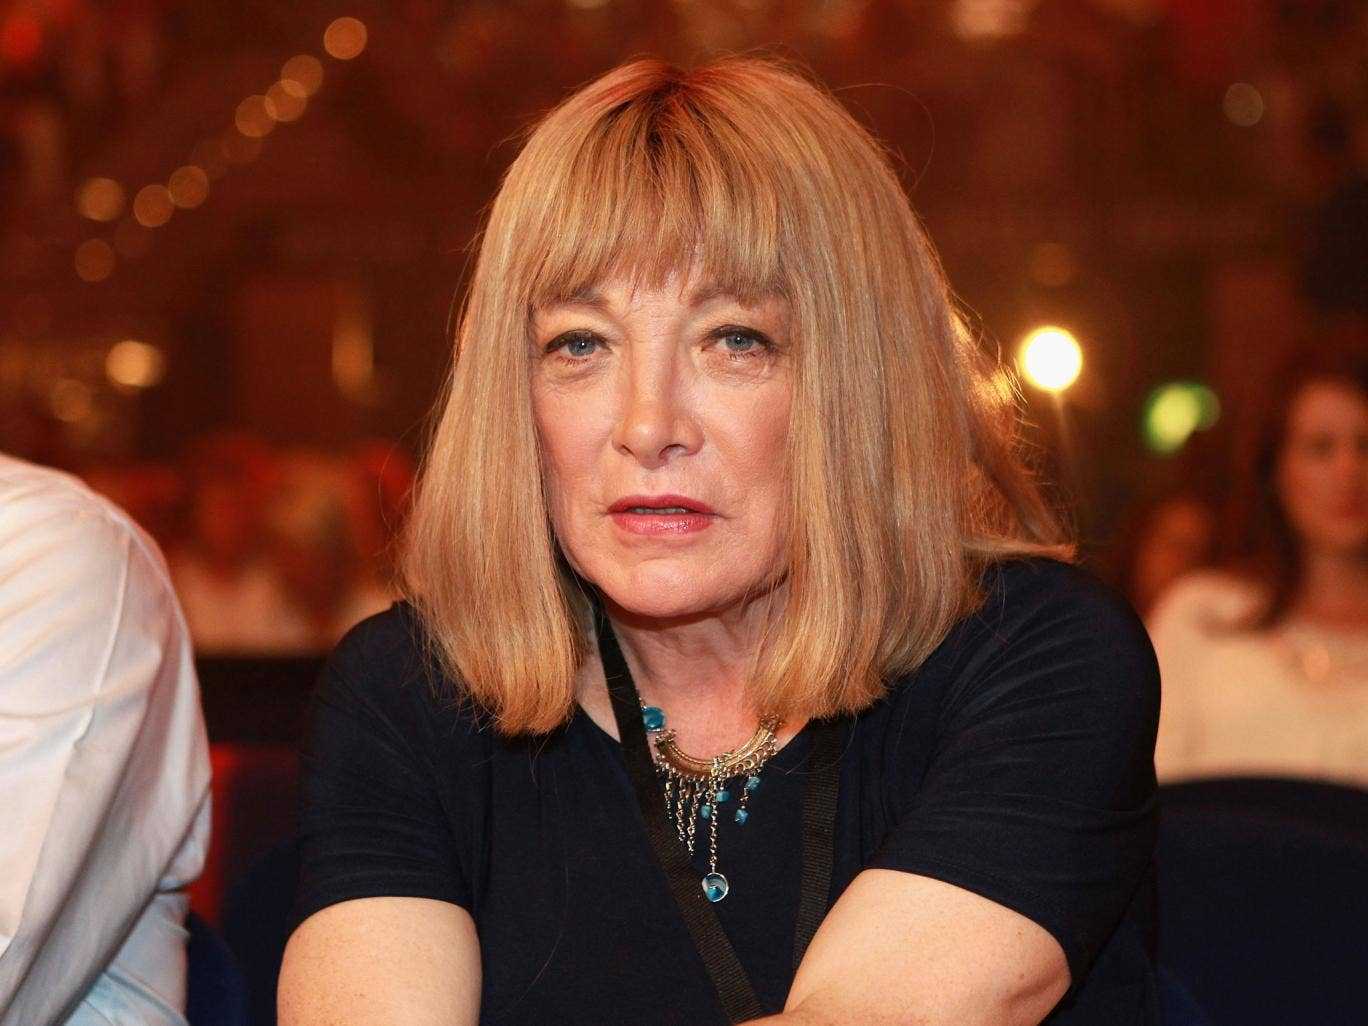 Boxing promoter Kellie Maloney, formerly known as Frank Maloney, entered the 2014 Celebrity Big Brother house